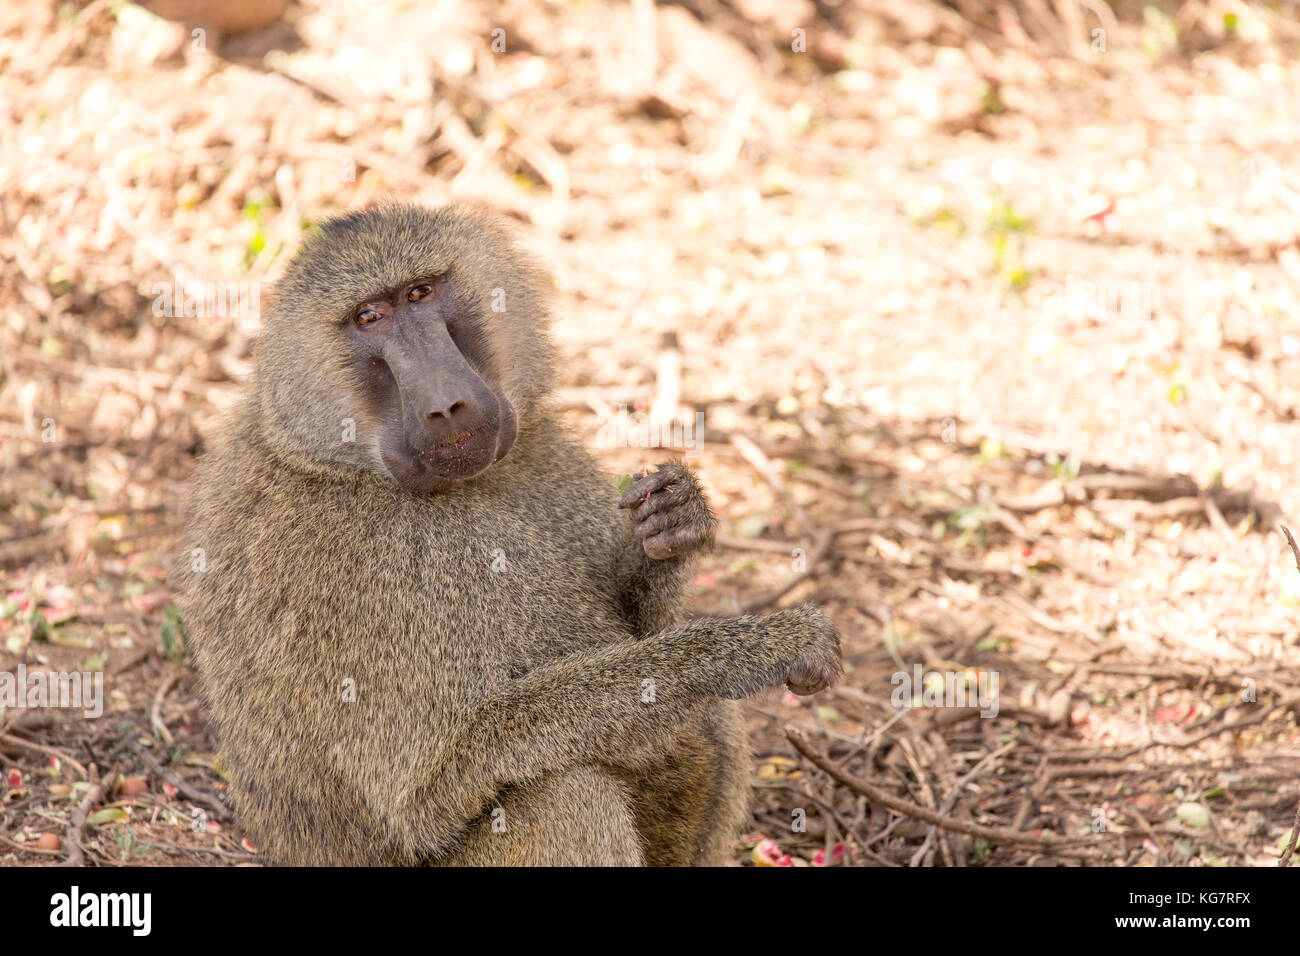 Olive baboon sitting in the shade eating nuts - Stock Image